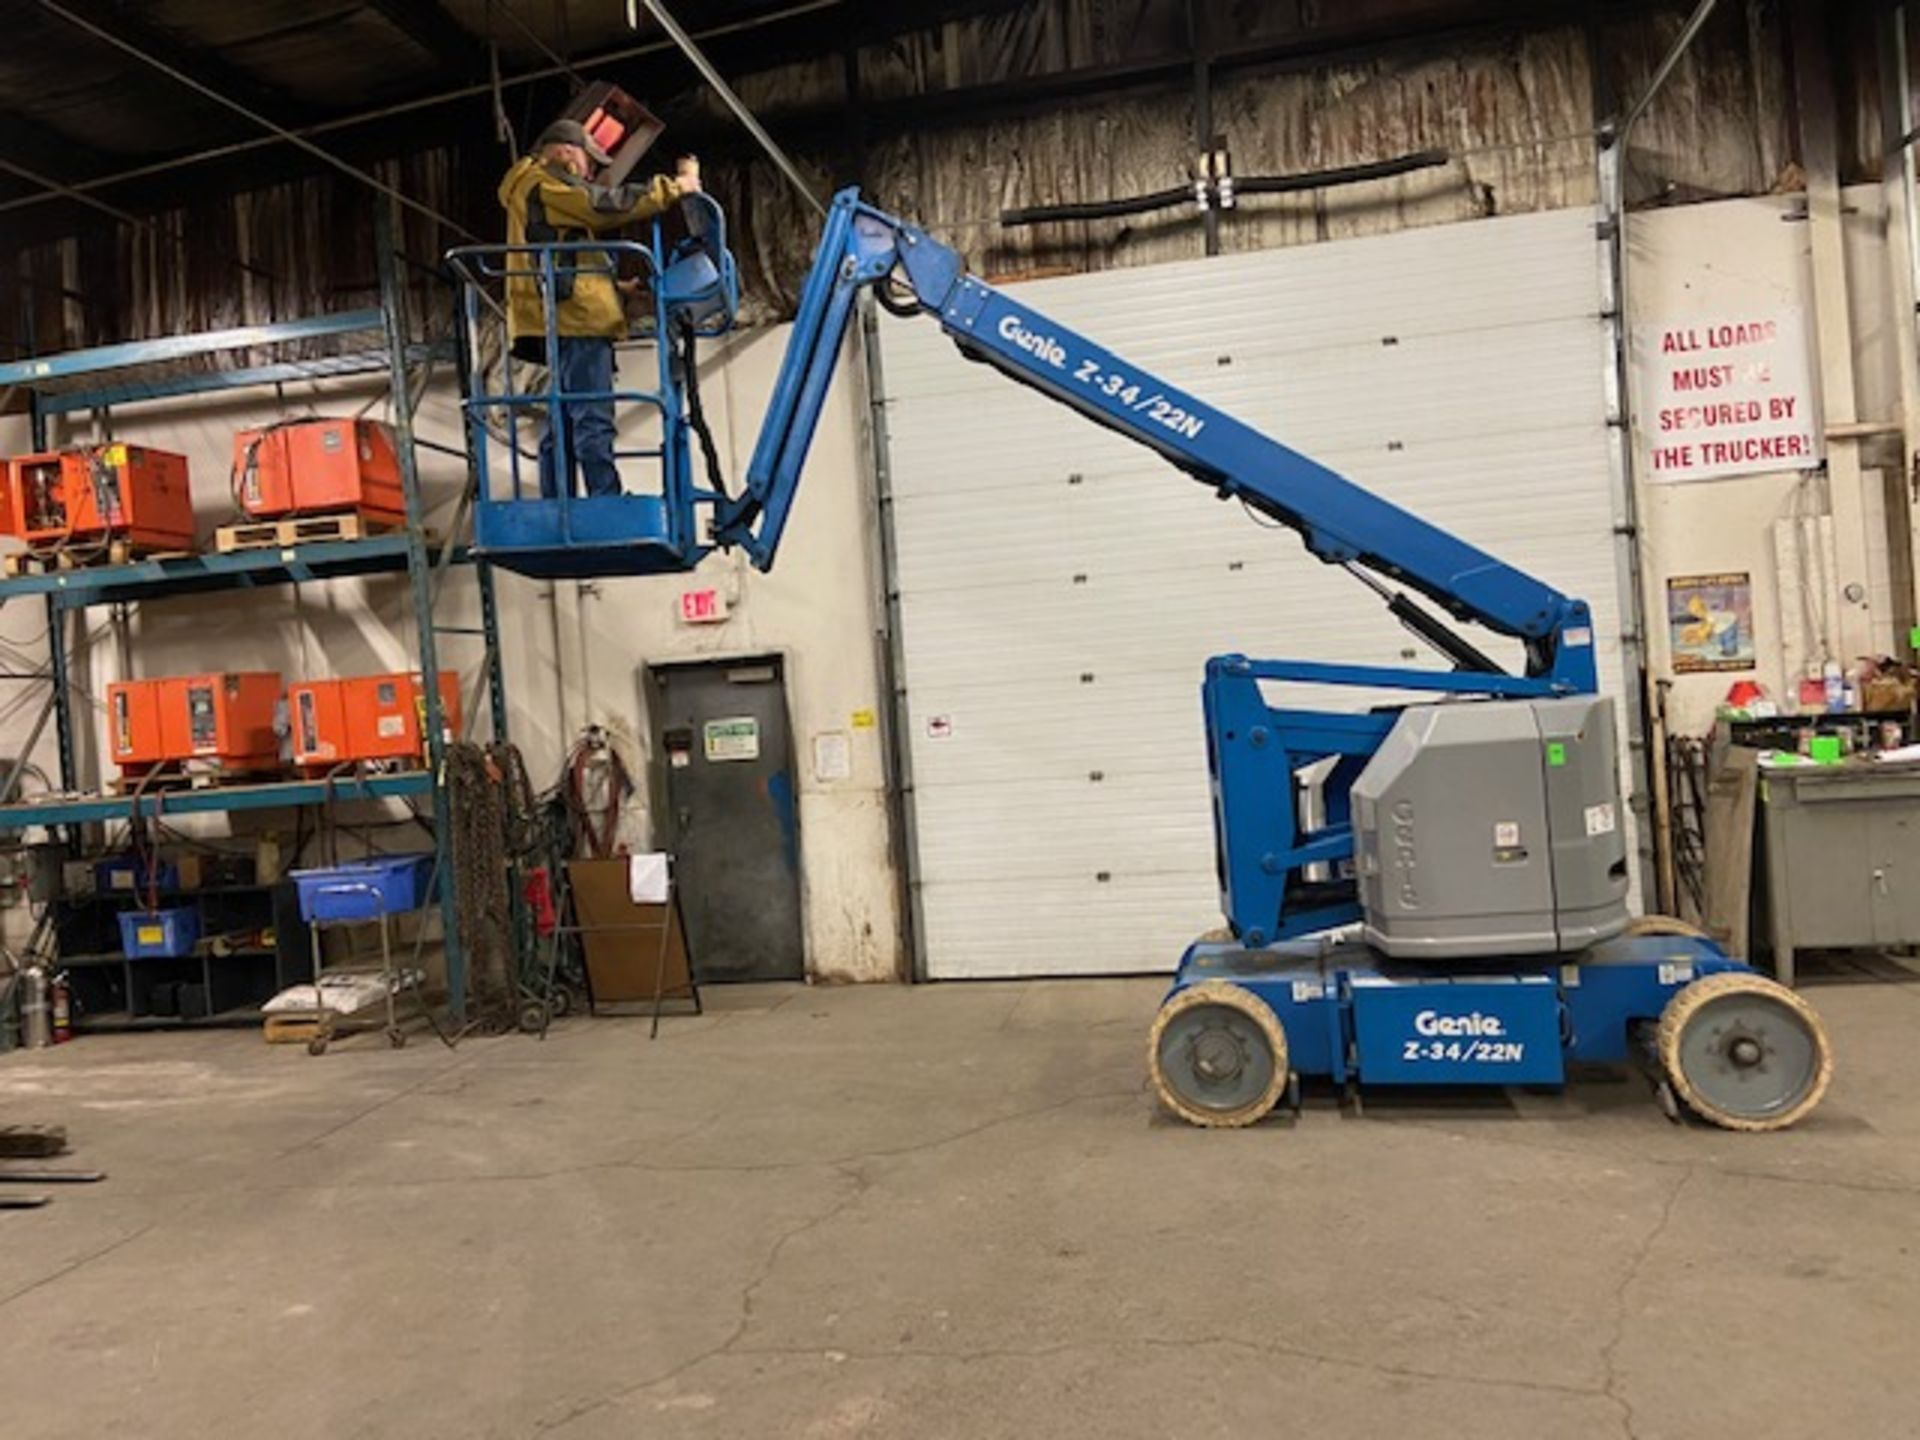 MINT 2005 Genie Boom Lift model Z-34/22N with 34' high with LOW hours ELECTRIC